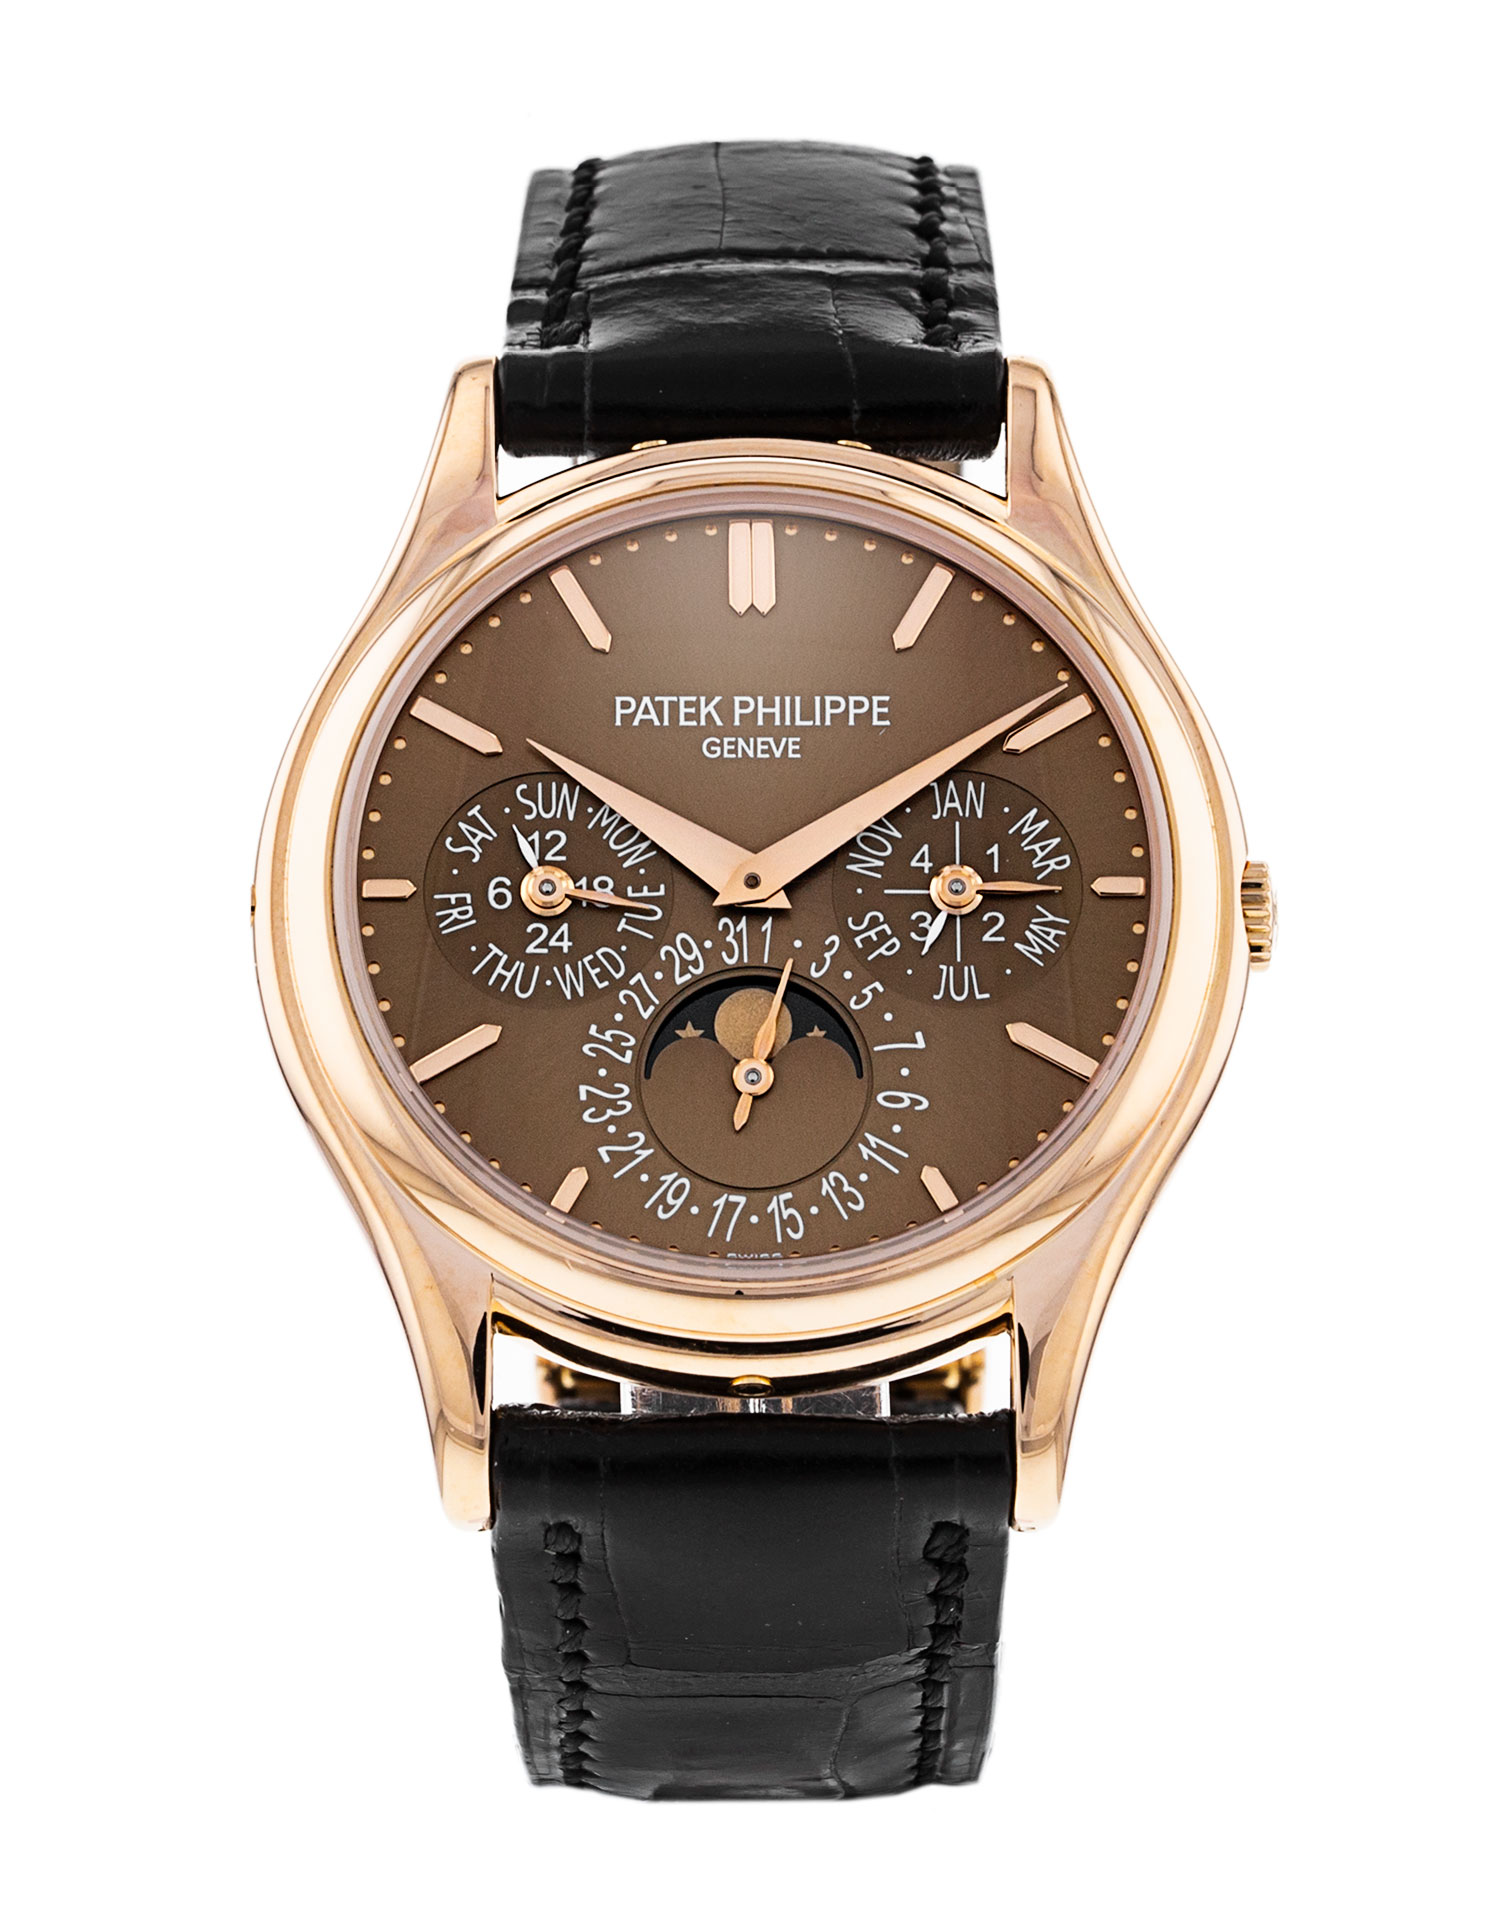 PatekPhilippe-GrandComplications-5140R-011-134450-2-190403-145238.jpg